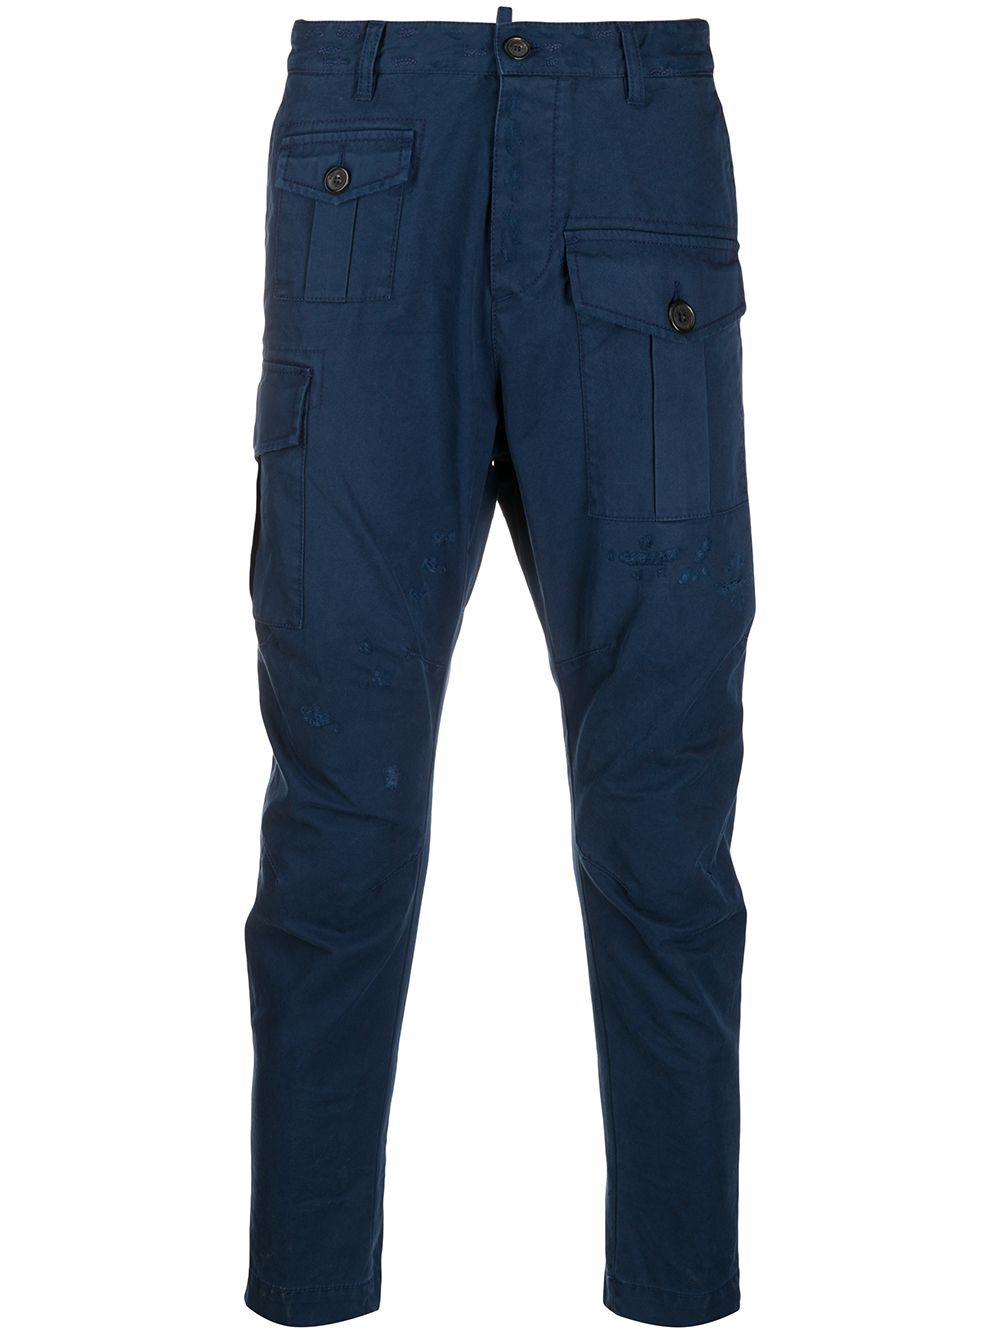 DSQUARED2 Cargo Chinos Navy - Maison De Fashion